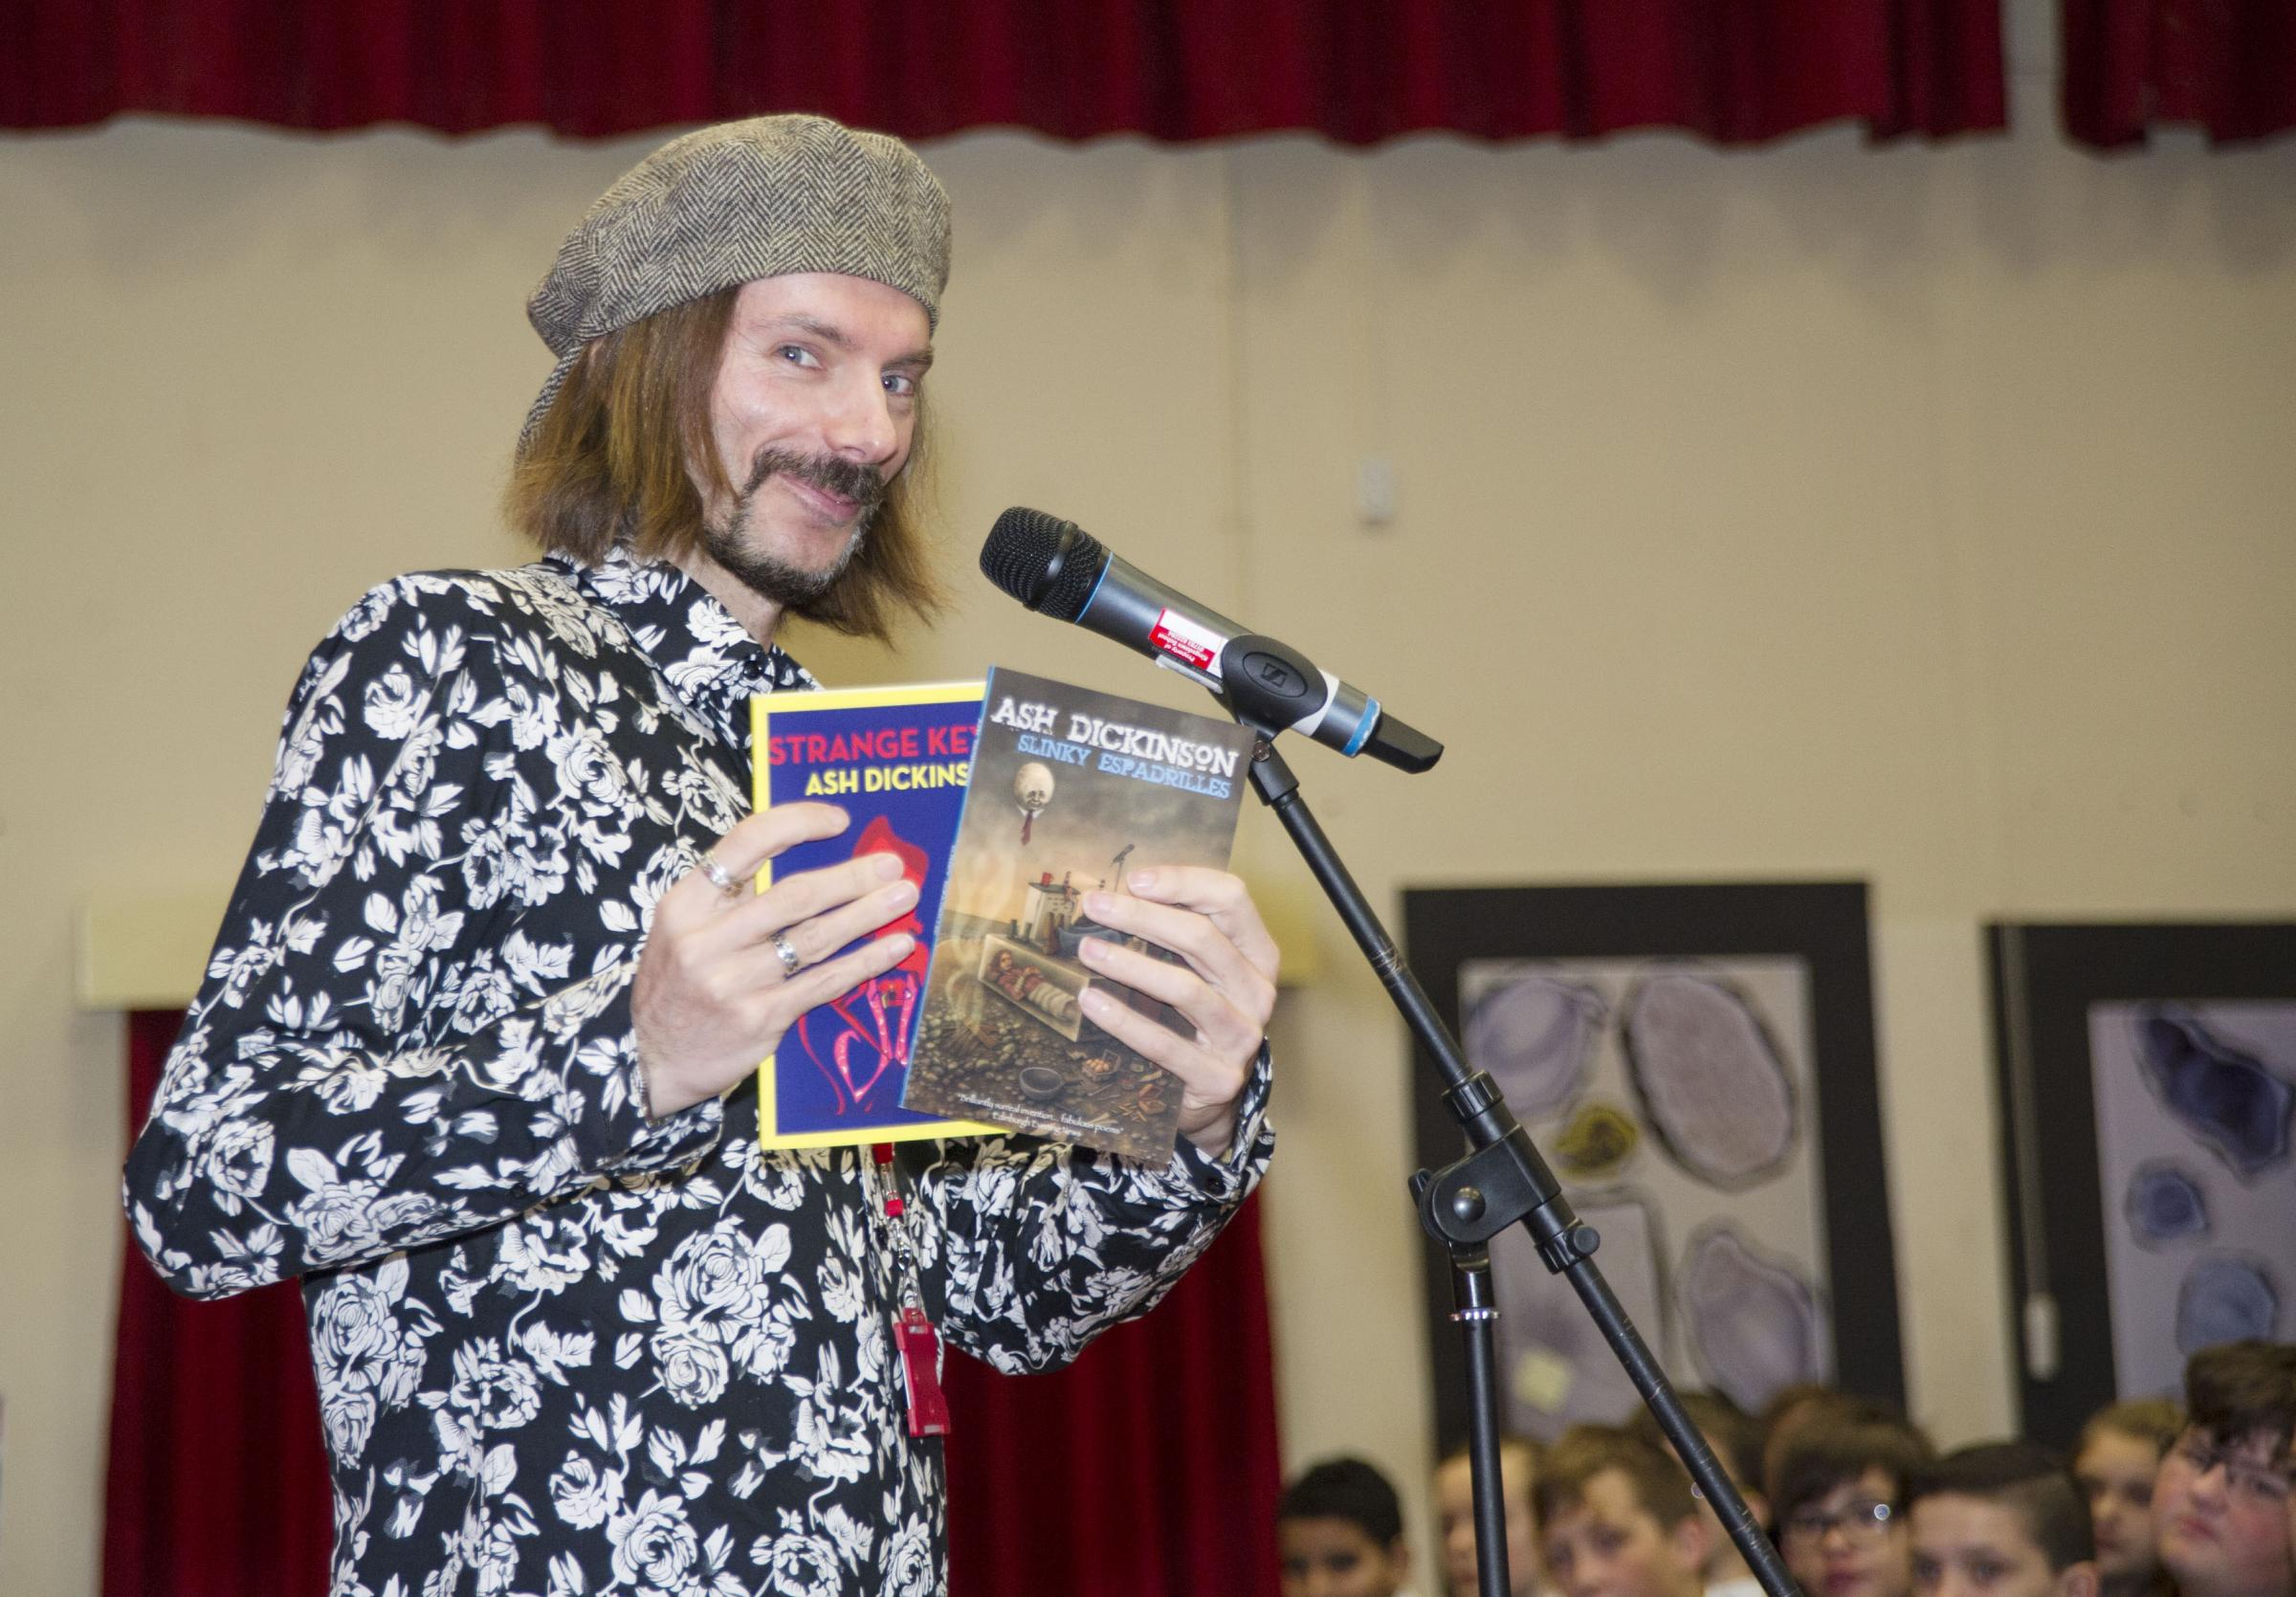 Swondon Youth festival of literature at Kingsdown school with Ash Dickinson. Pic - Ash Dickinson Date 10/11/17 Pic by Dave Cox